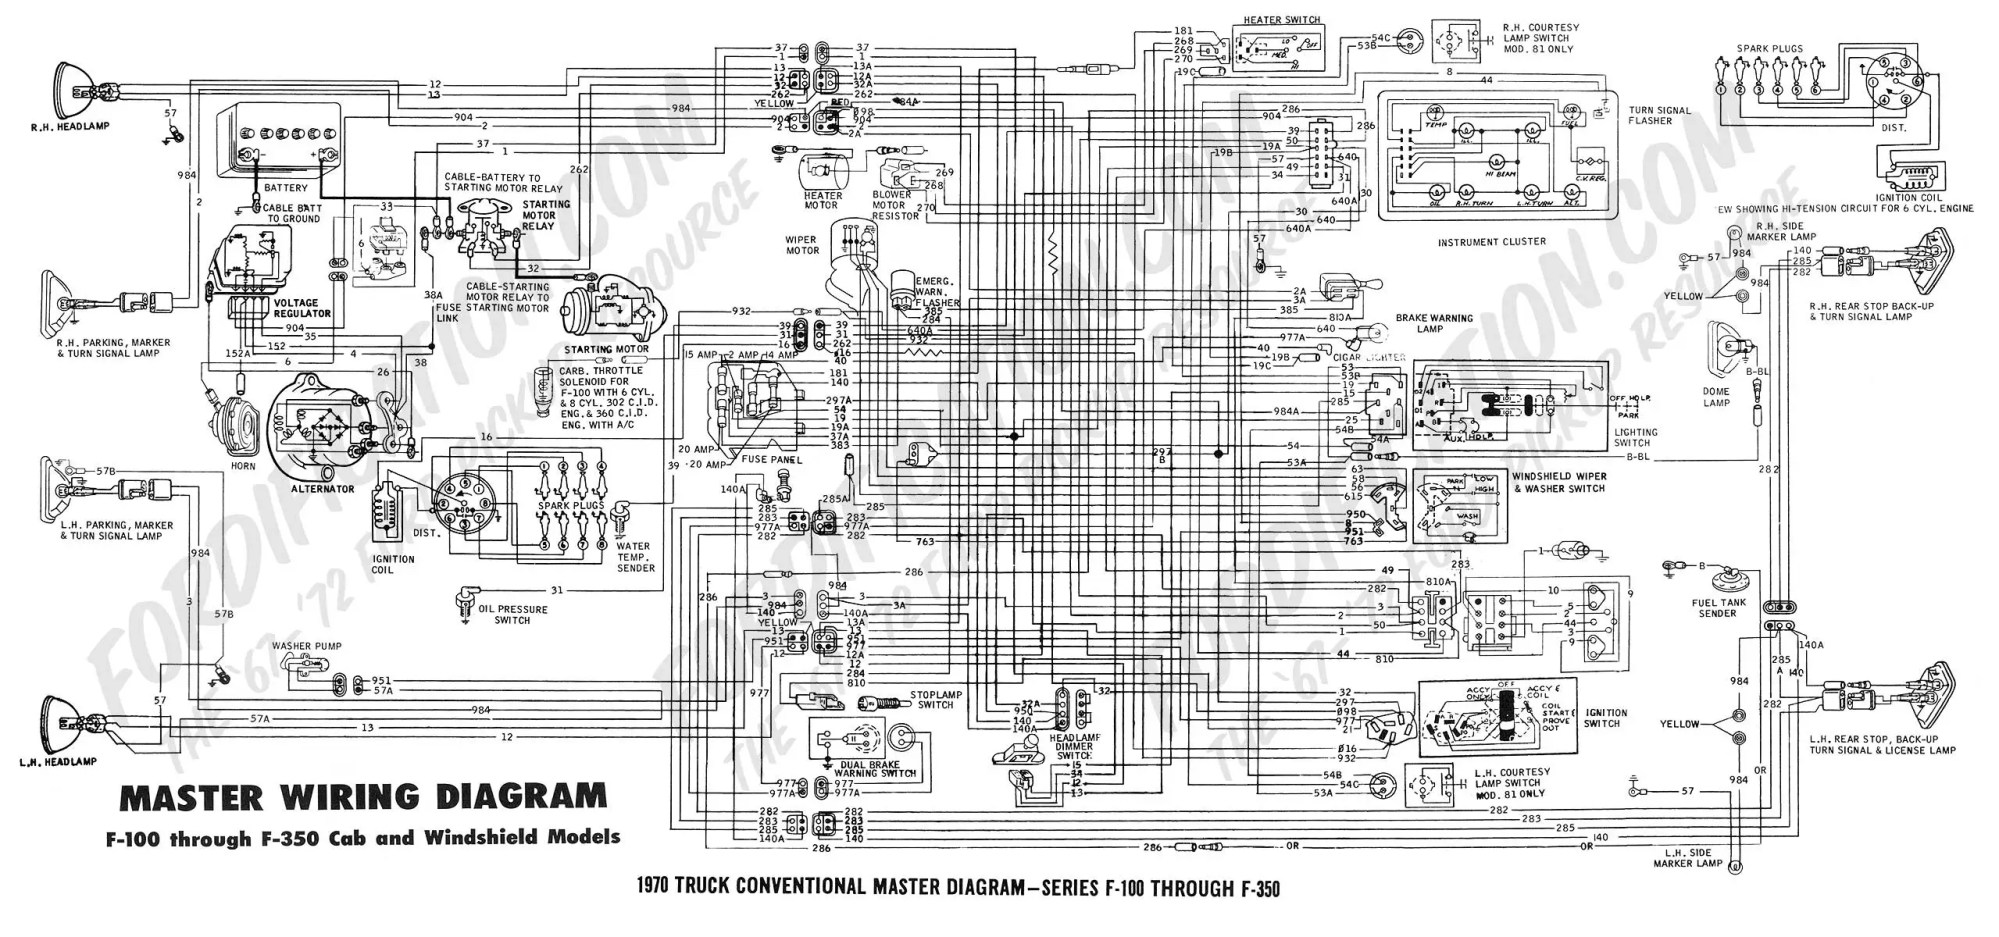 hight resolution of 2007 ford wiring diagram wiring diagram 2007 ford f250 diesel wiring diagram 2007 ford f250 wiring diagram